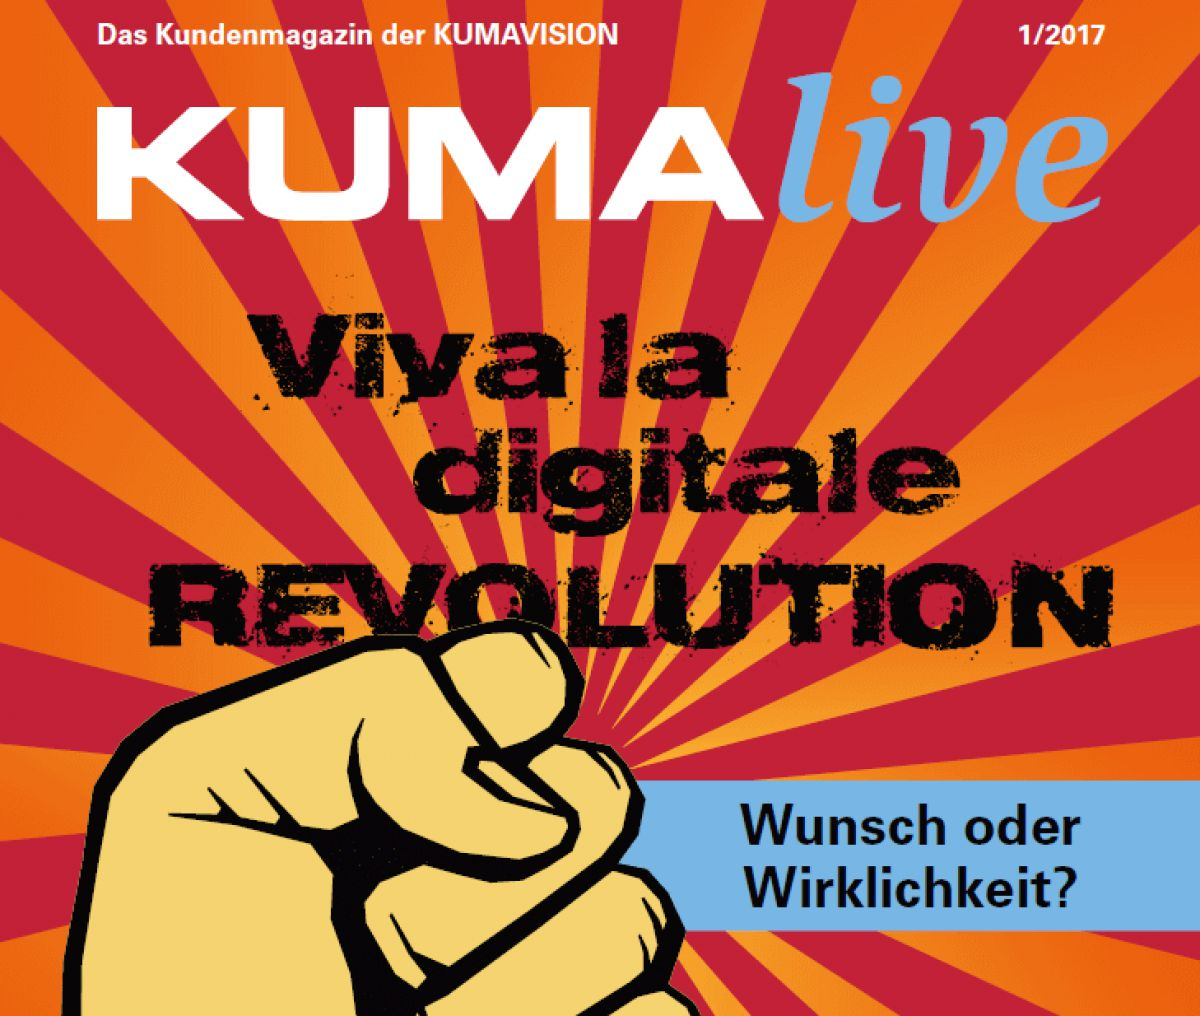 kundenmagazin kumalive digitale revolution wunsch oder wirklichkeit. Black Bedroom Furniture Sets. Home Design Ideas